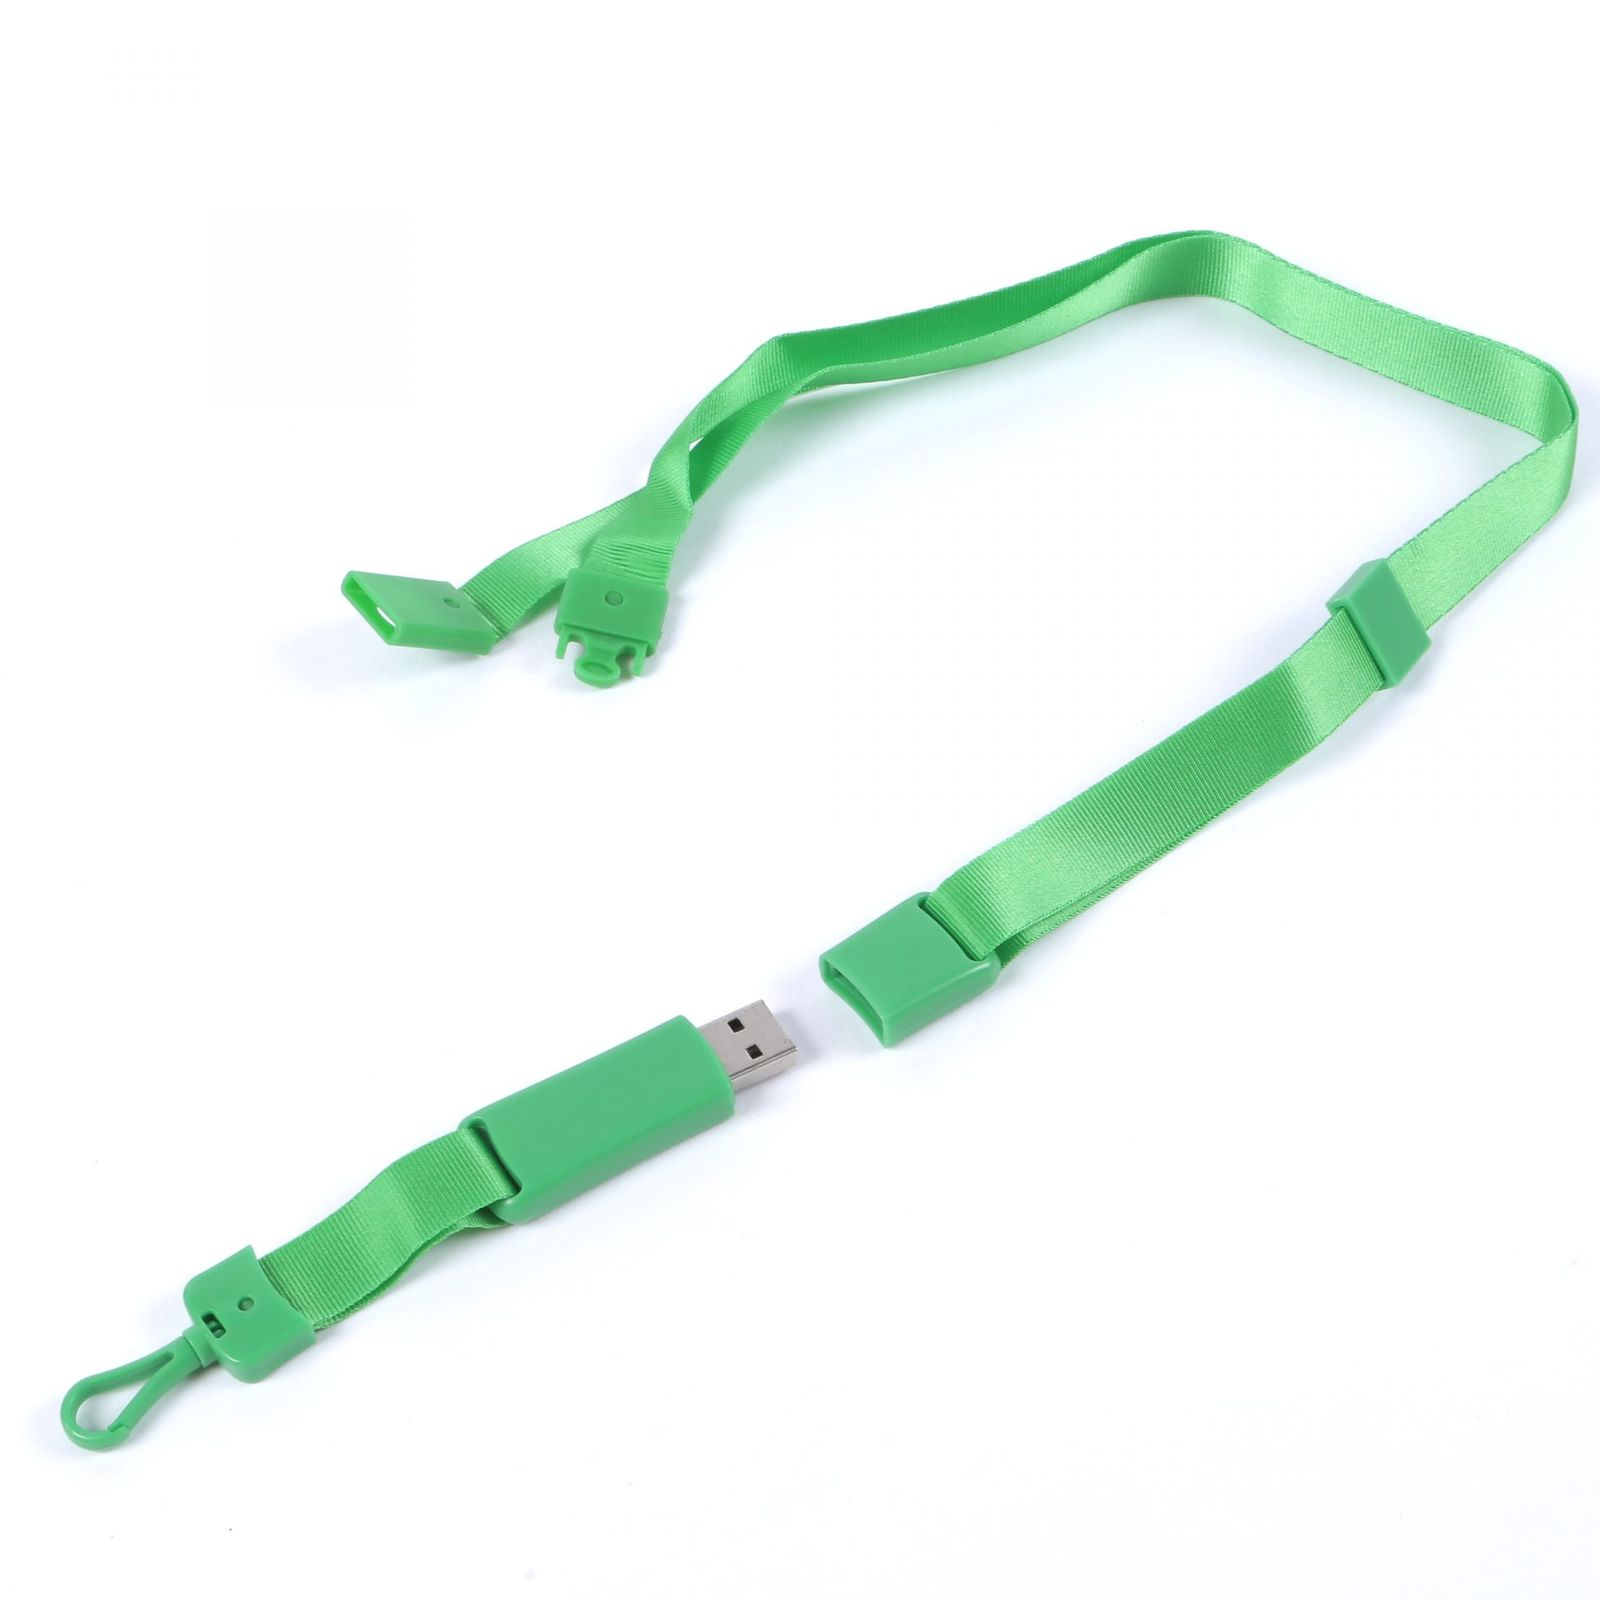 Buy Premium USB Lanyards on Lanyards Direct Today!